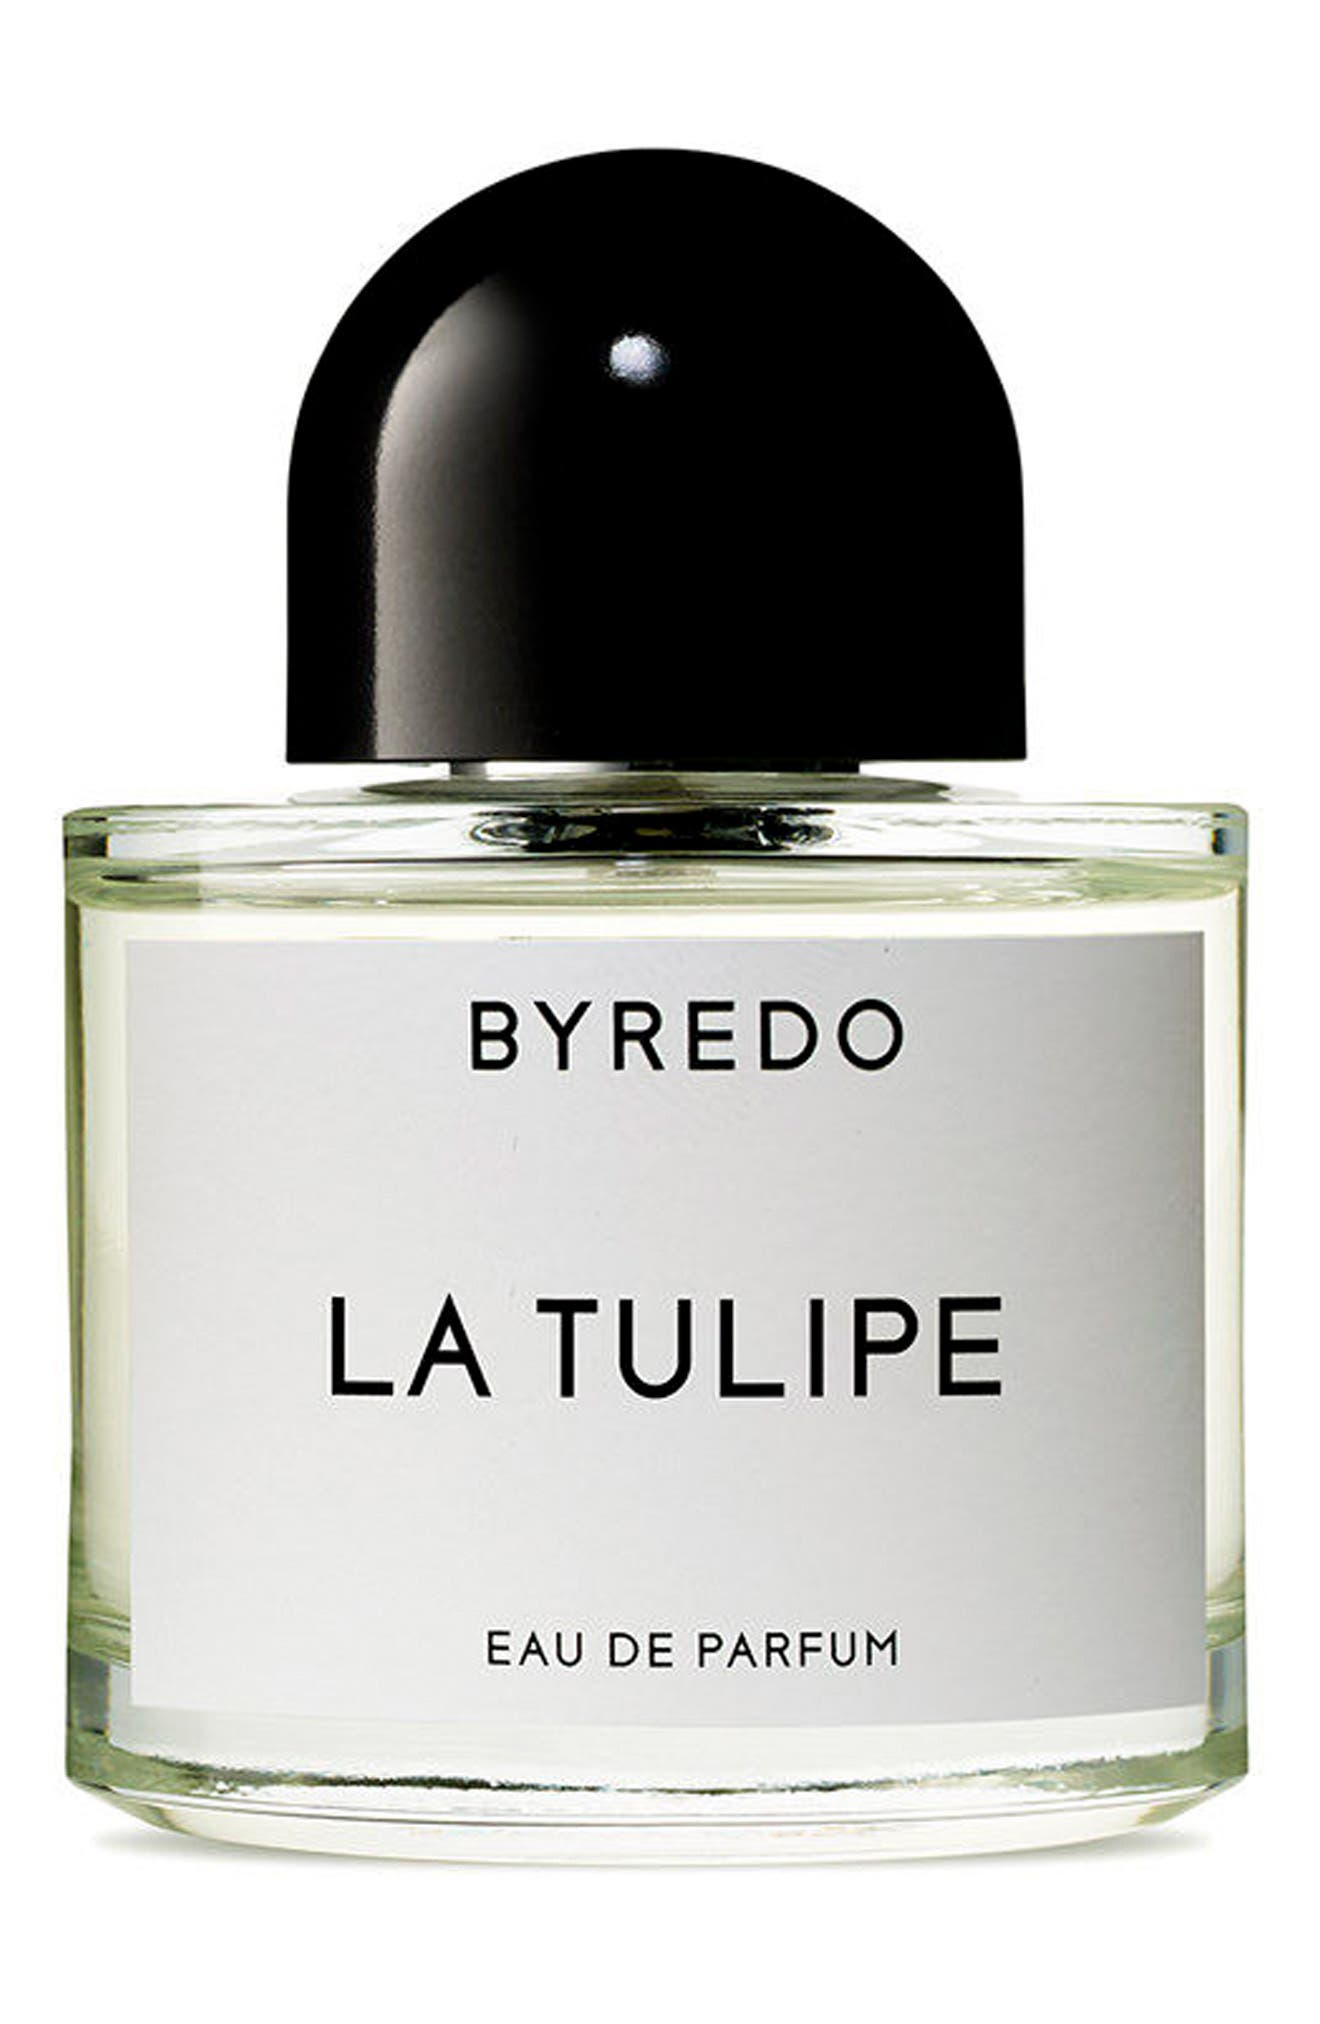 BYREDO, La Tulipe Eau de Parfum, Alternate thumbnail 2, color, NO COLOR